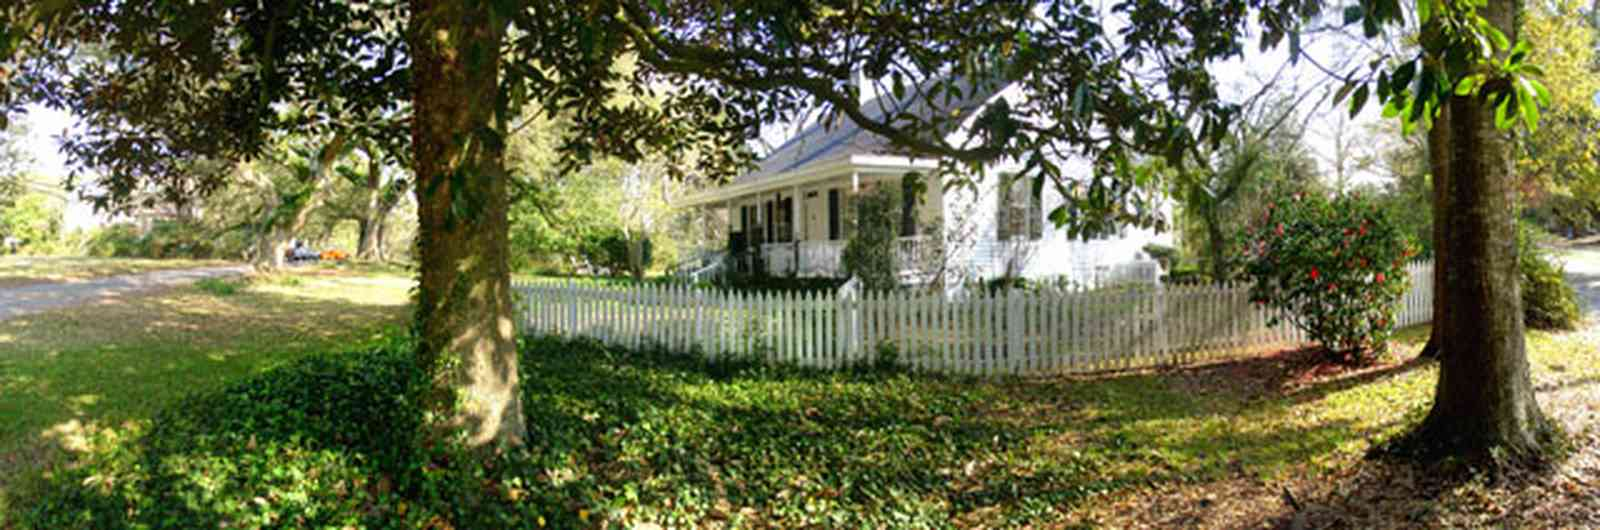 East-Hill:-1602-Moreno-Street_02.jpg:  victorian cottage, oak tree, english ivy, magnolia tree